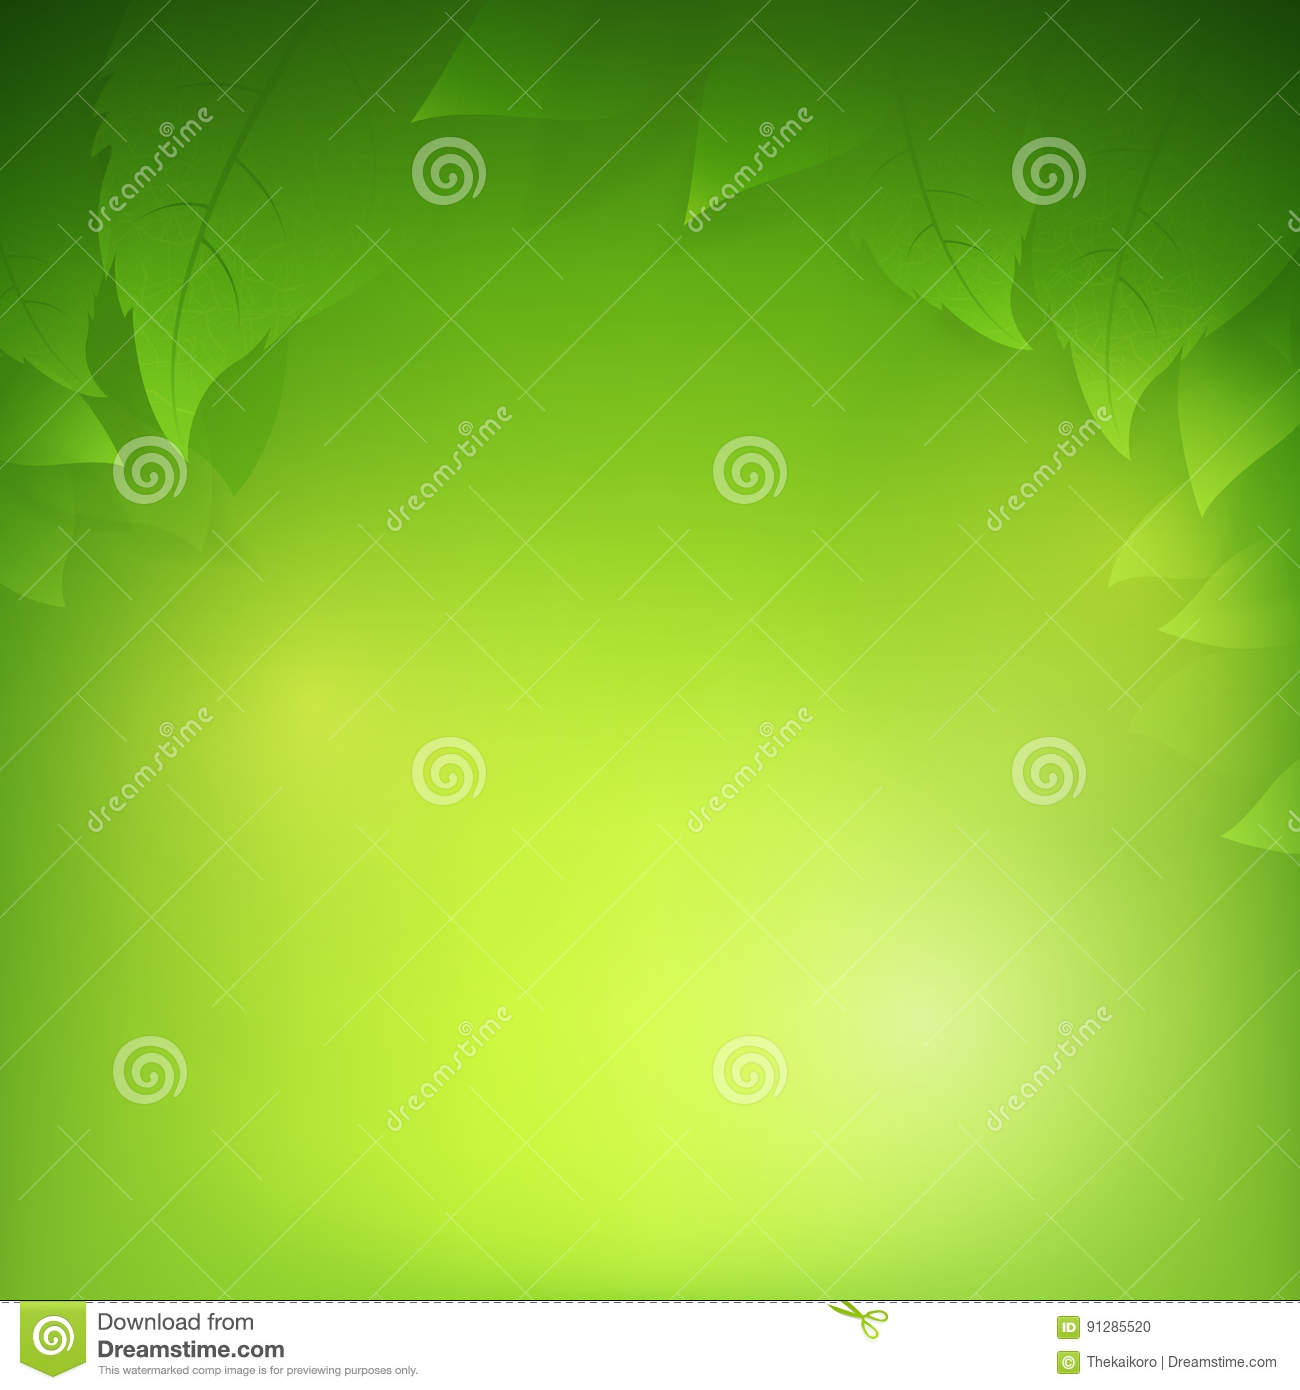 Background image transparency - Abstract Gradient Green Background With Transparency Leaf Stock Illustration